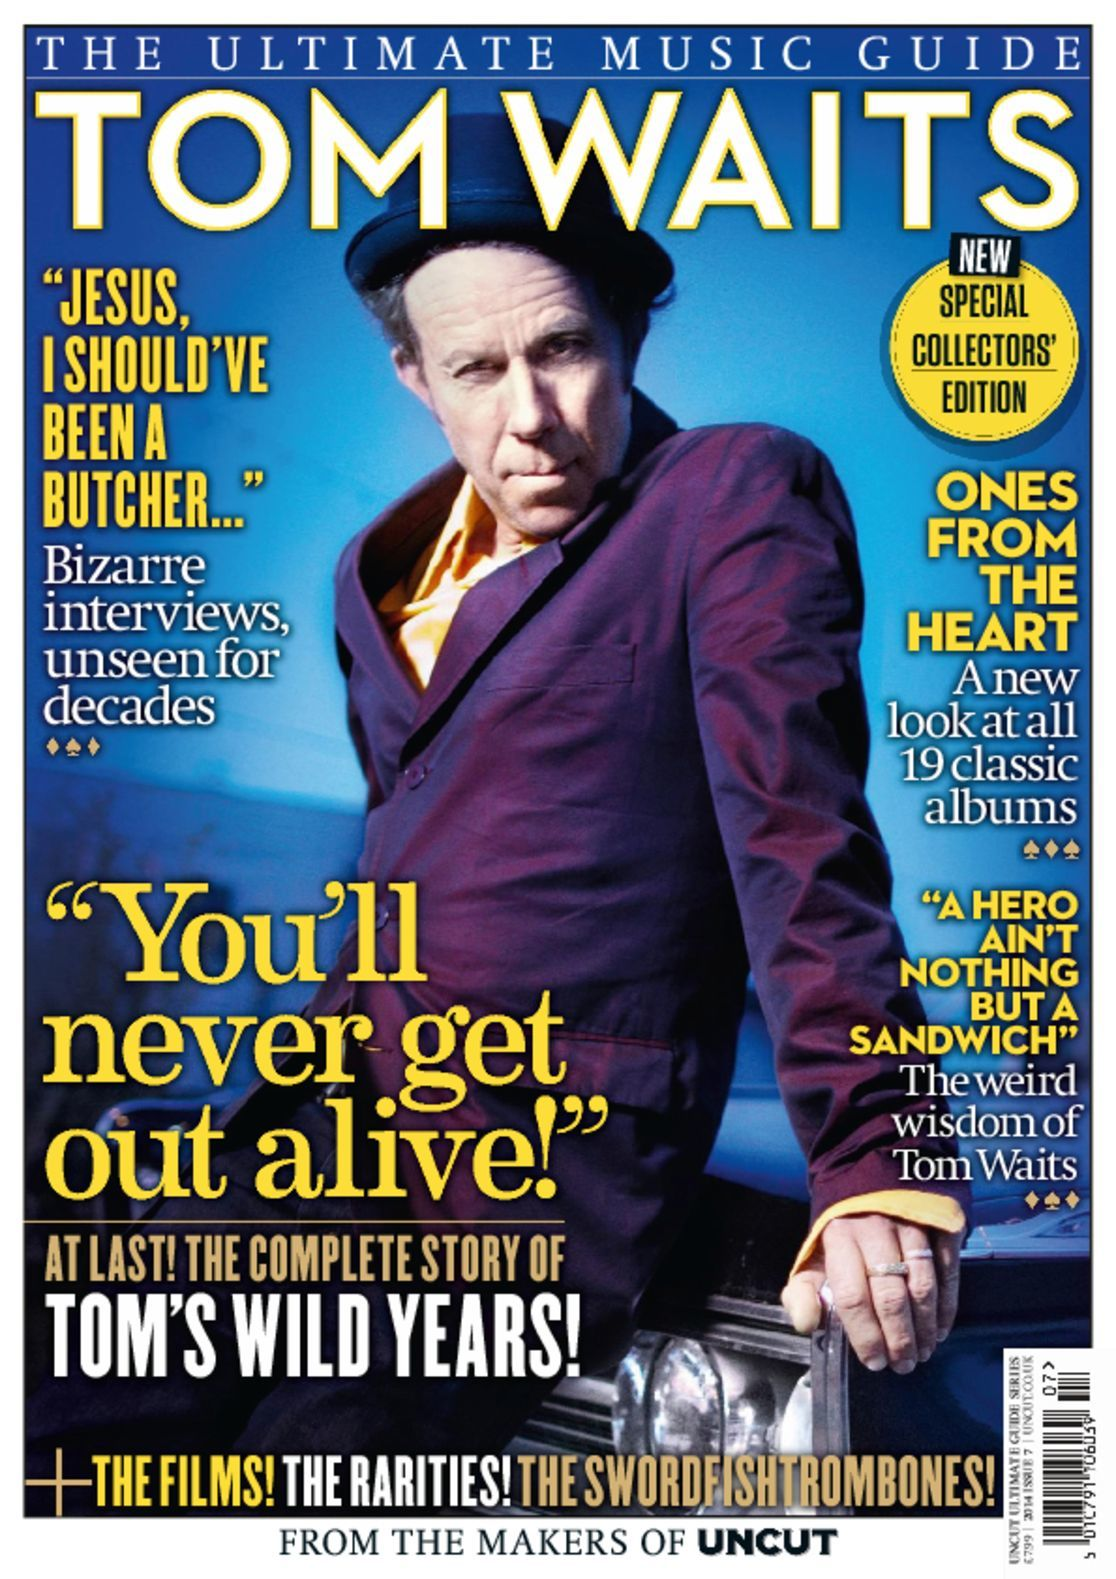 Tom Waits The Ultimate Music Guide Digital